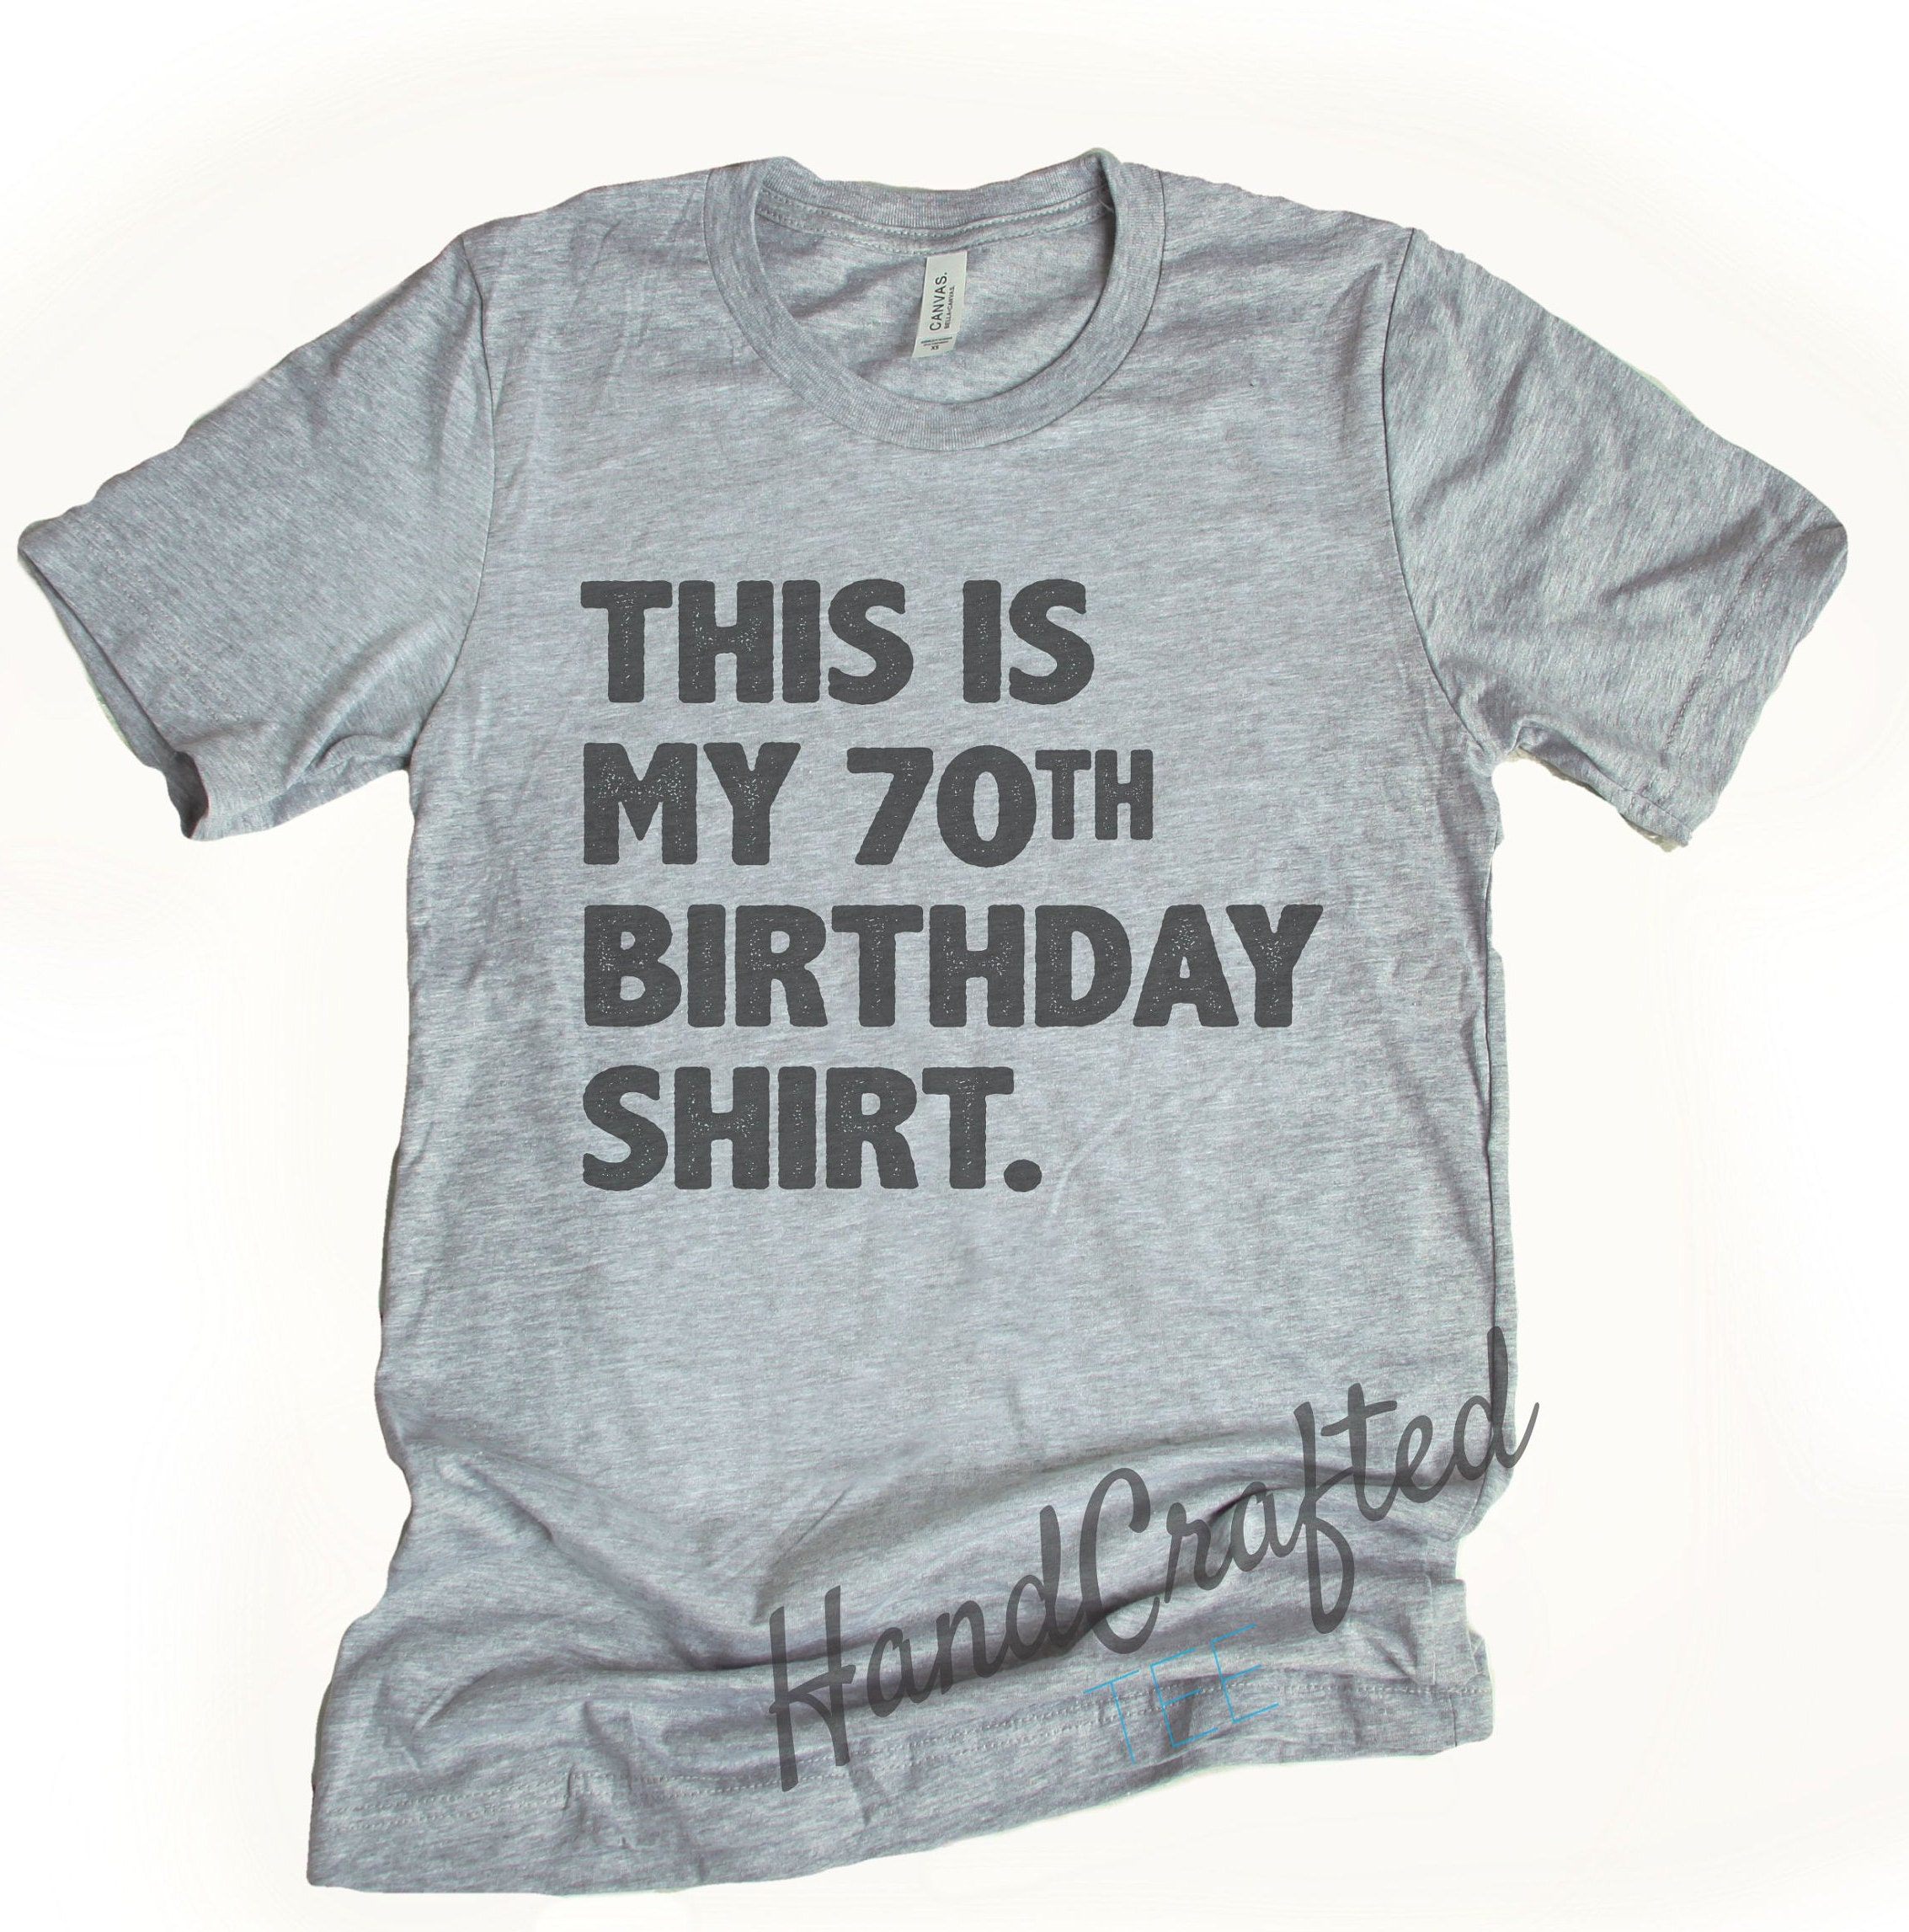 This Is My 70th Birthday Shirt Gifts Humor